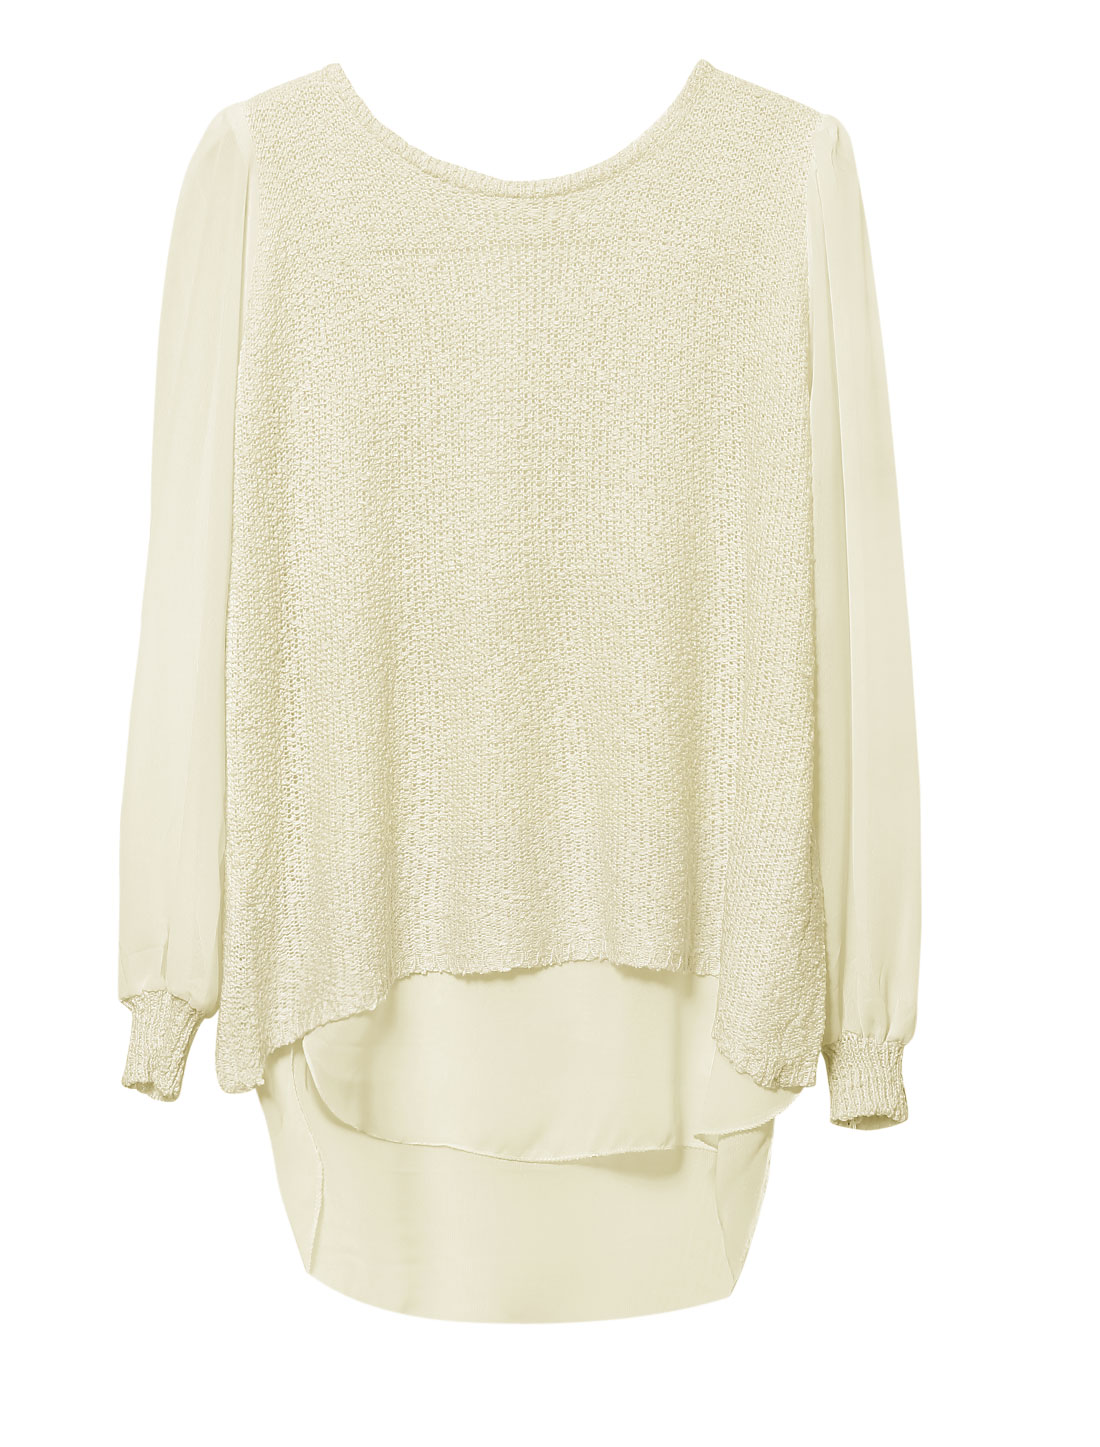 Lady Round Neck Zip Up Back Casual Tunic Knit Top Beige S